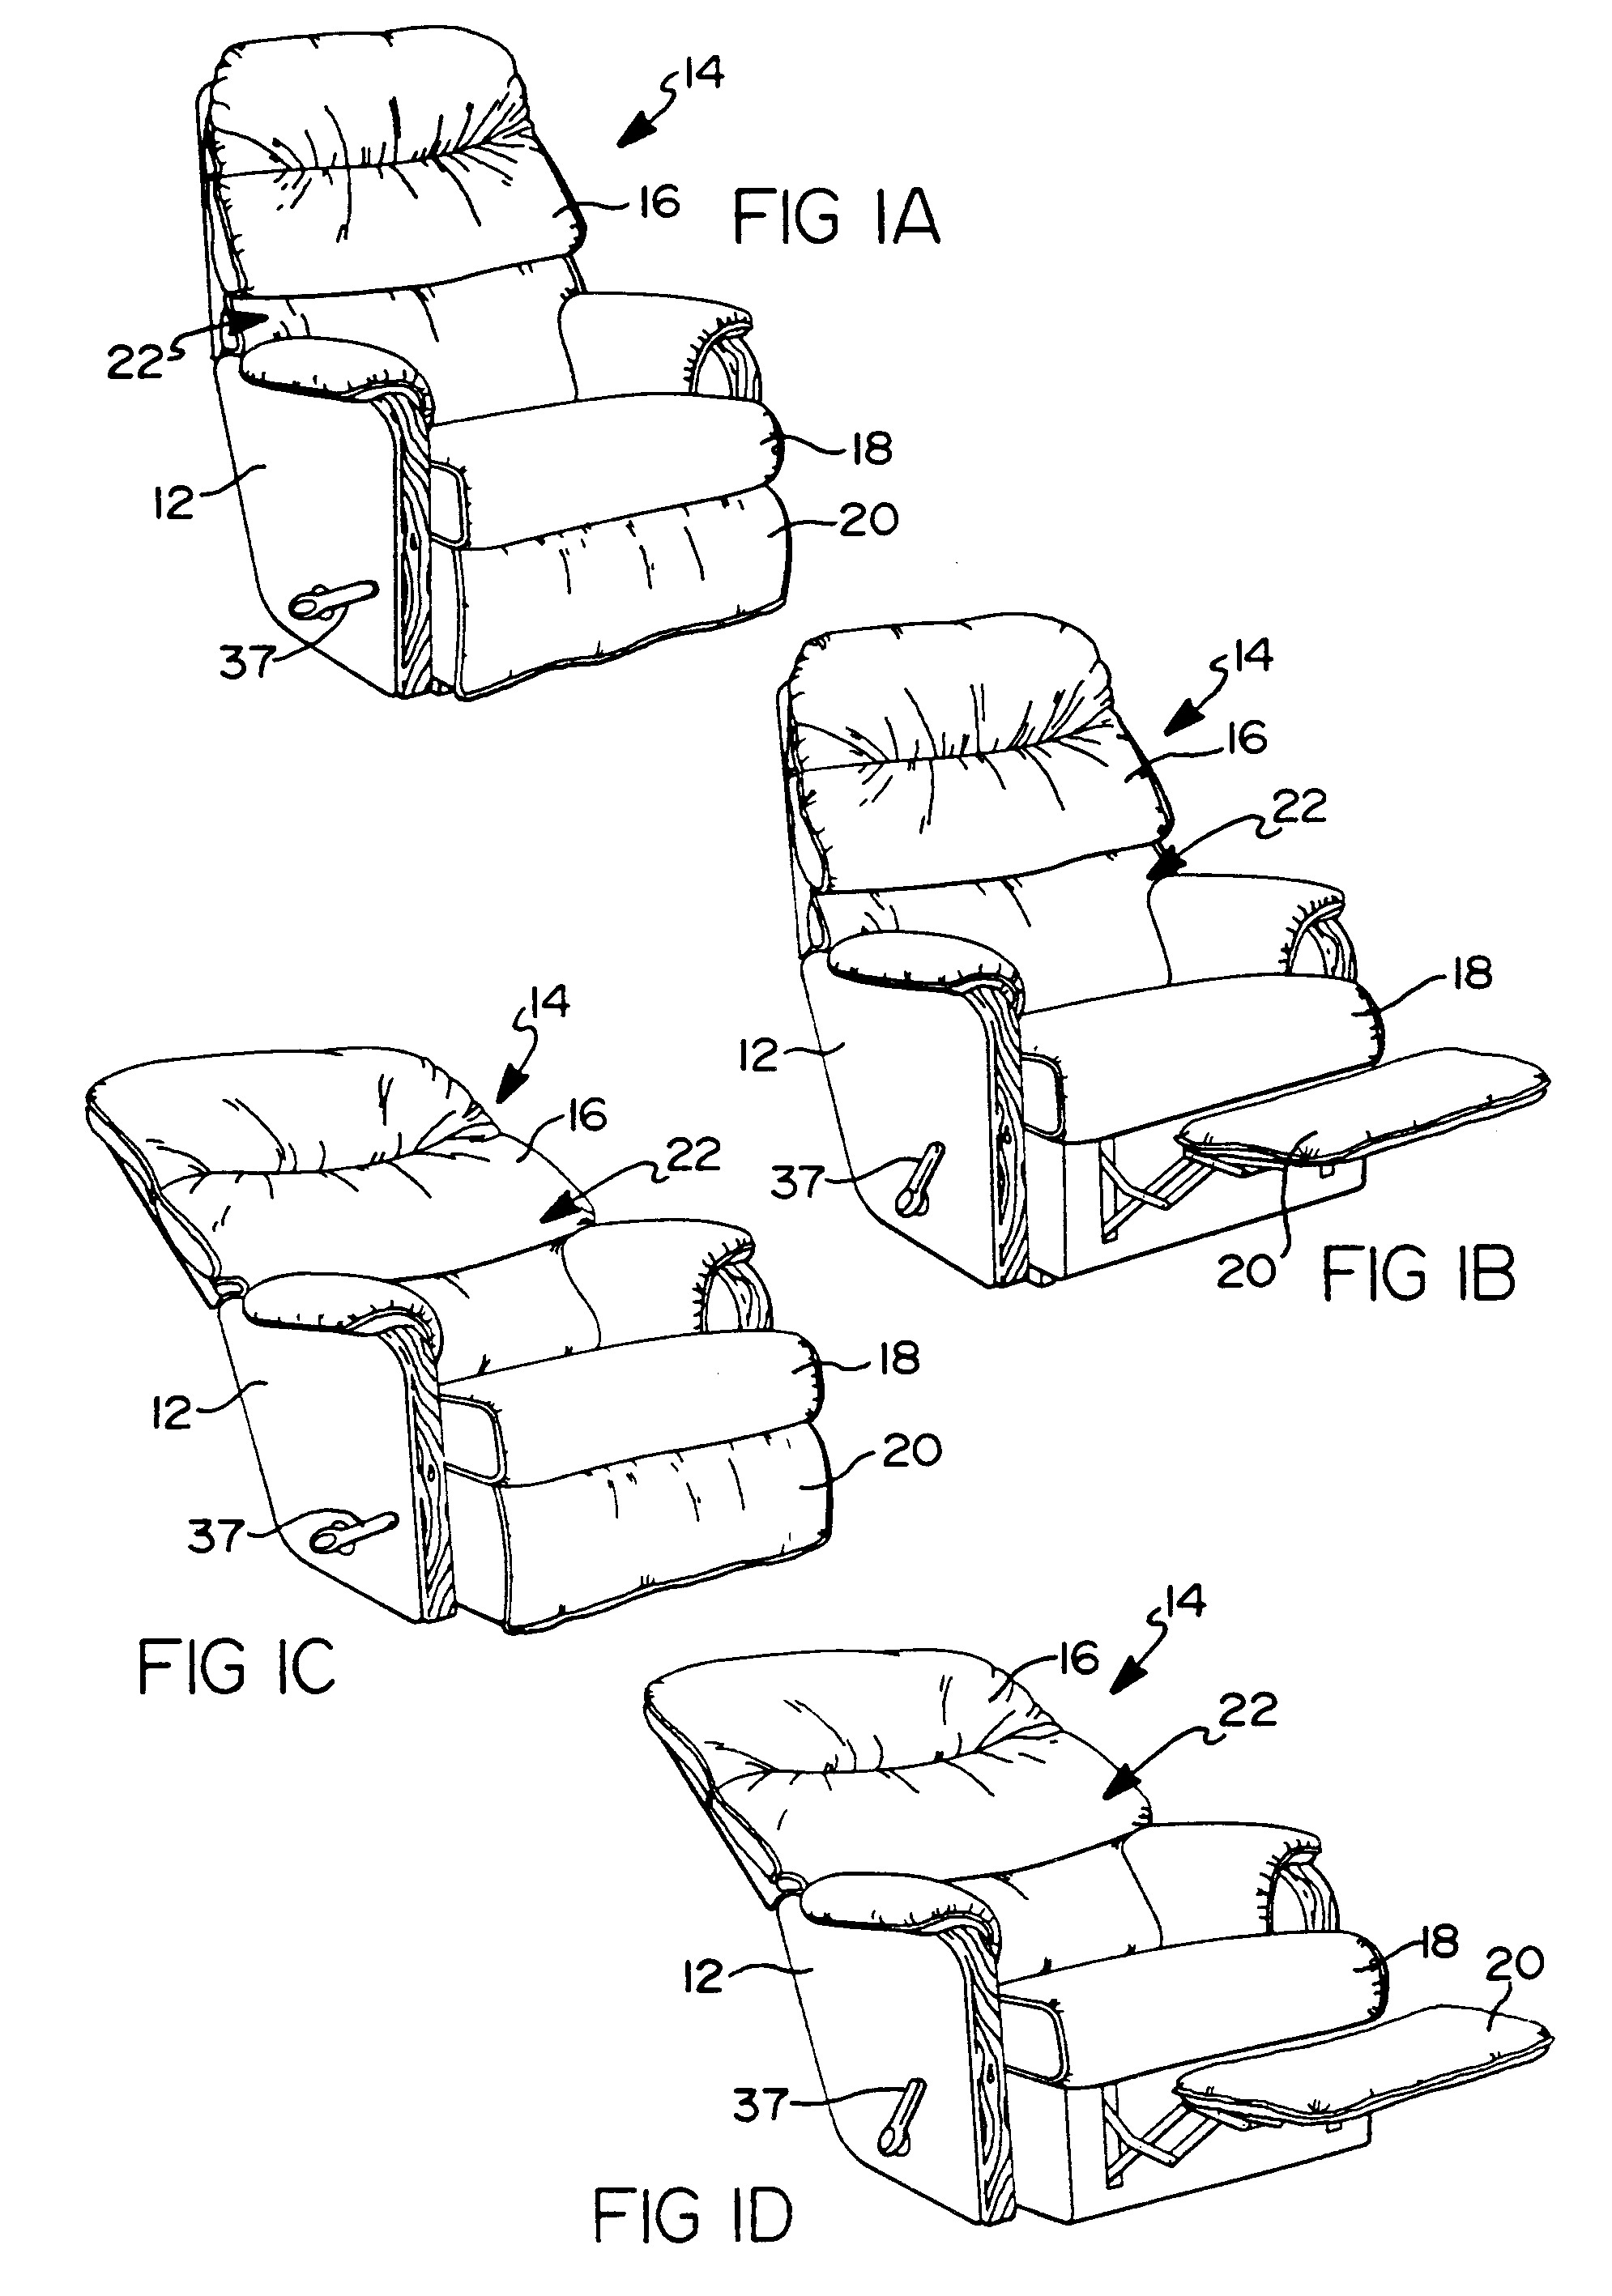 Lazy Boy Recliner Rest Diagram, Lazy, Free Engine Image